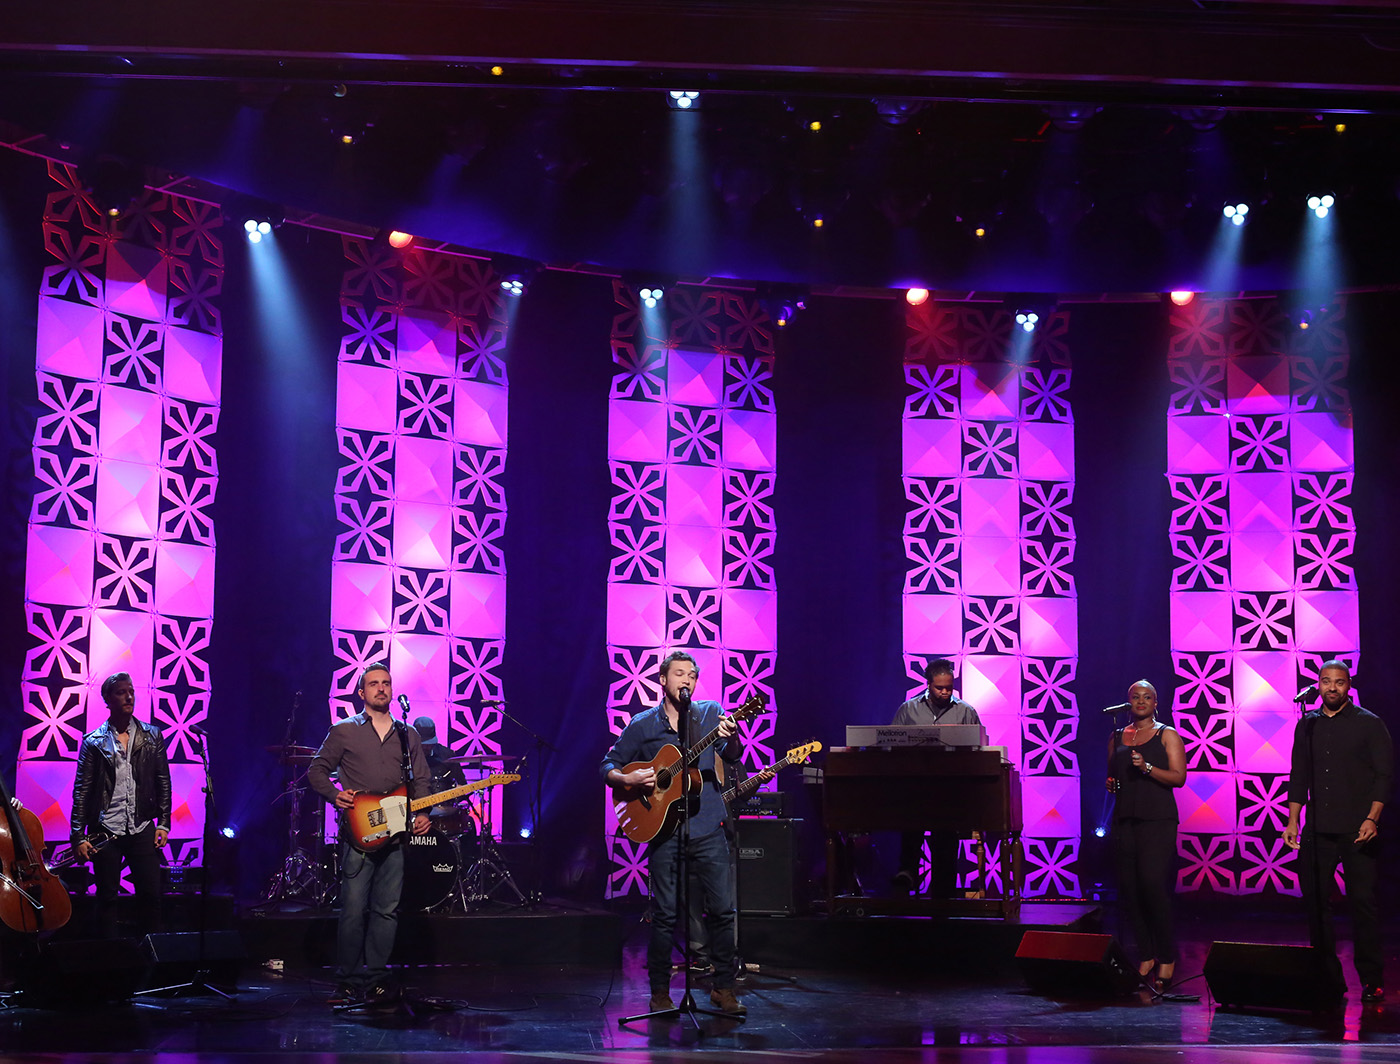 Pyramid and Xscape panels backup Phillip Phillips on The Ellen Show